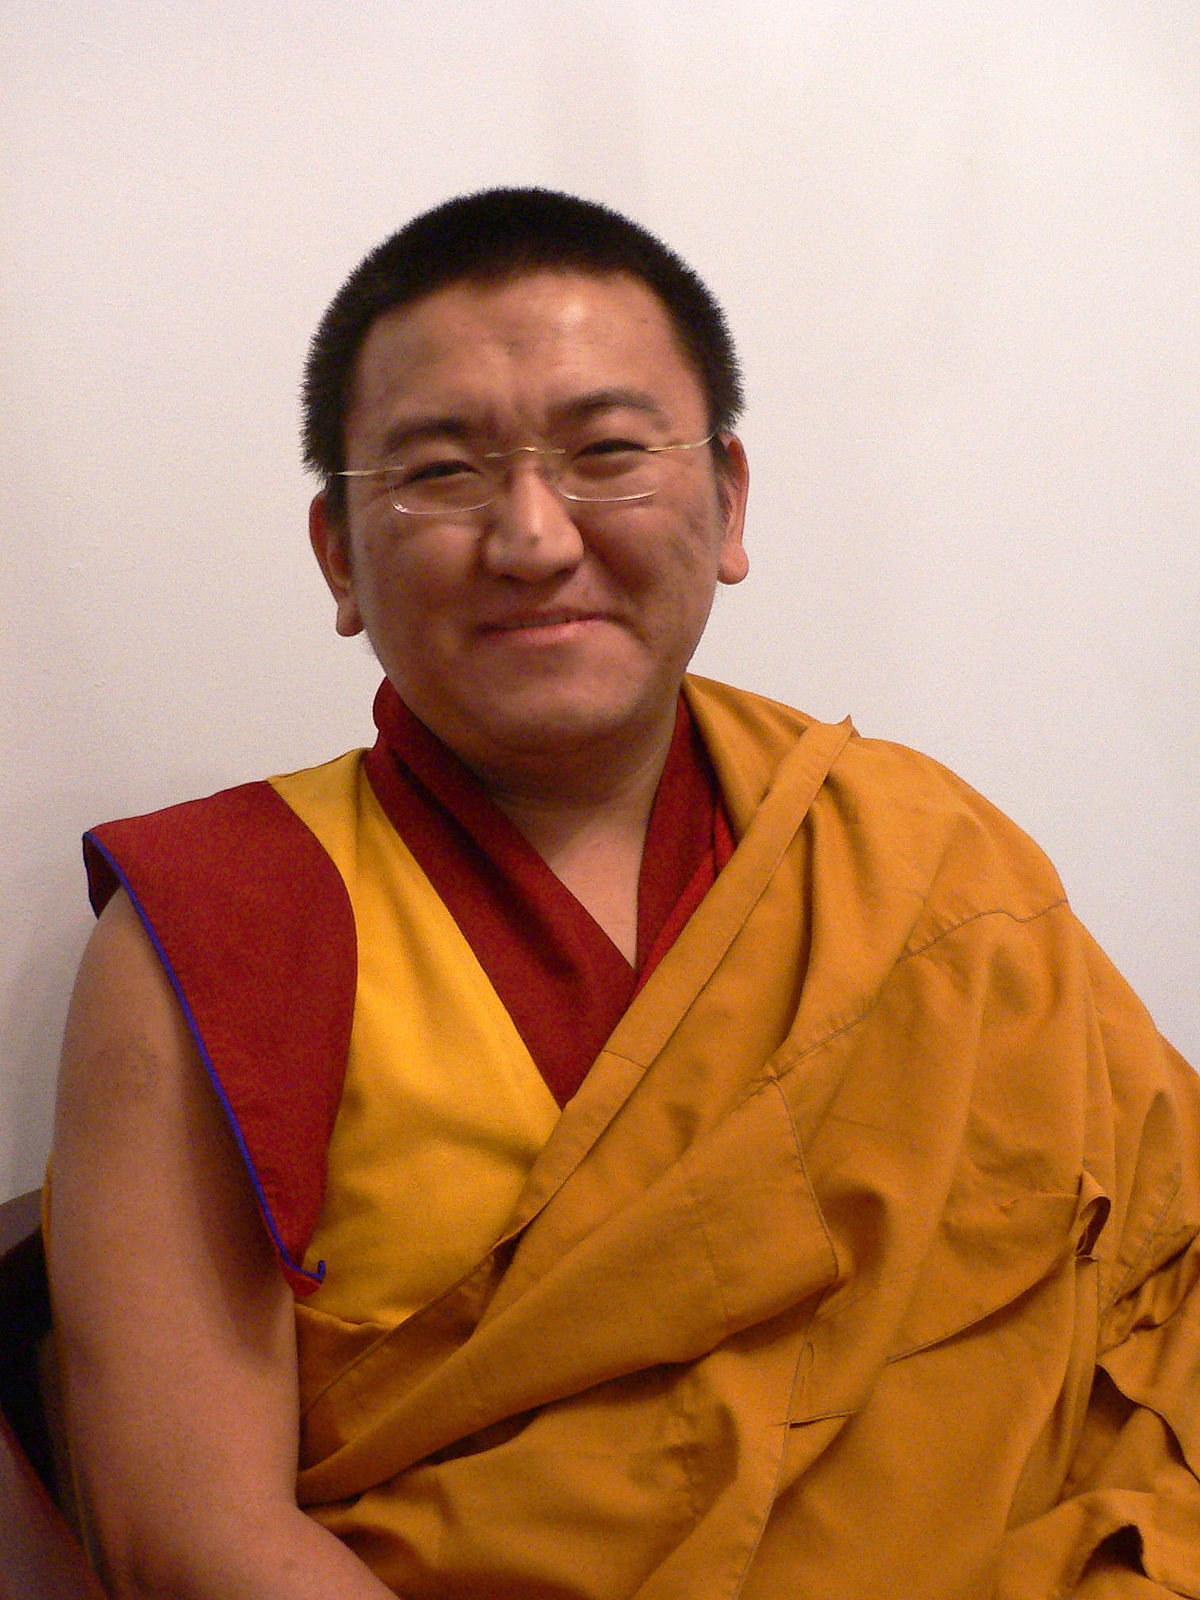 Changling Rinpoche